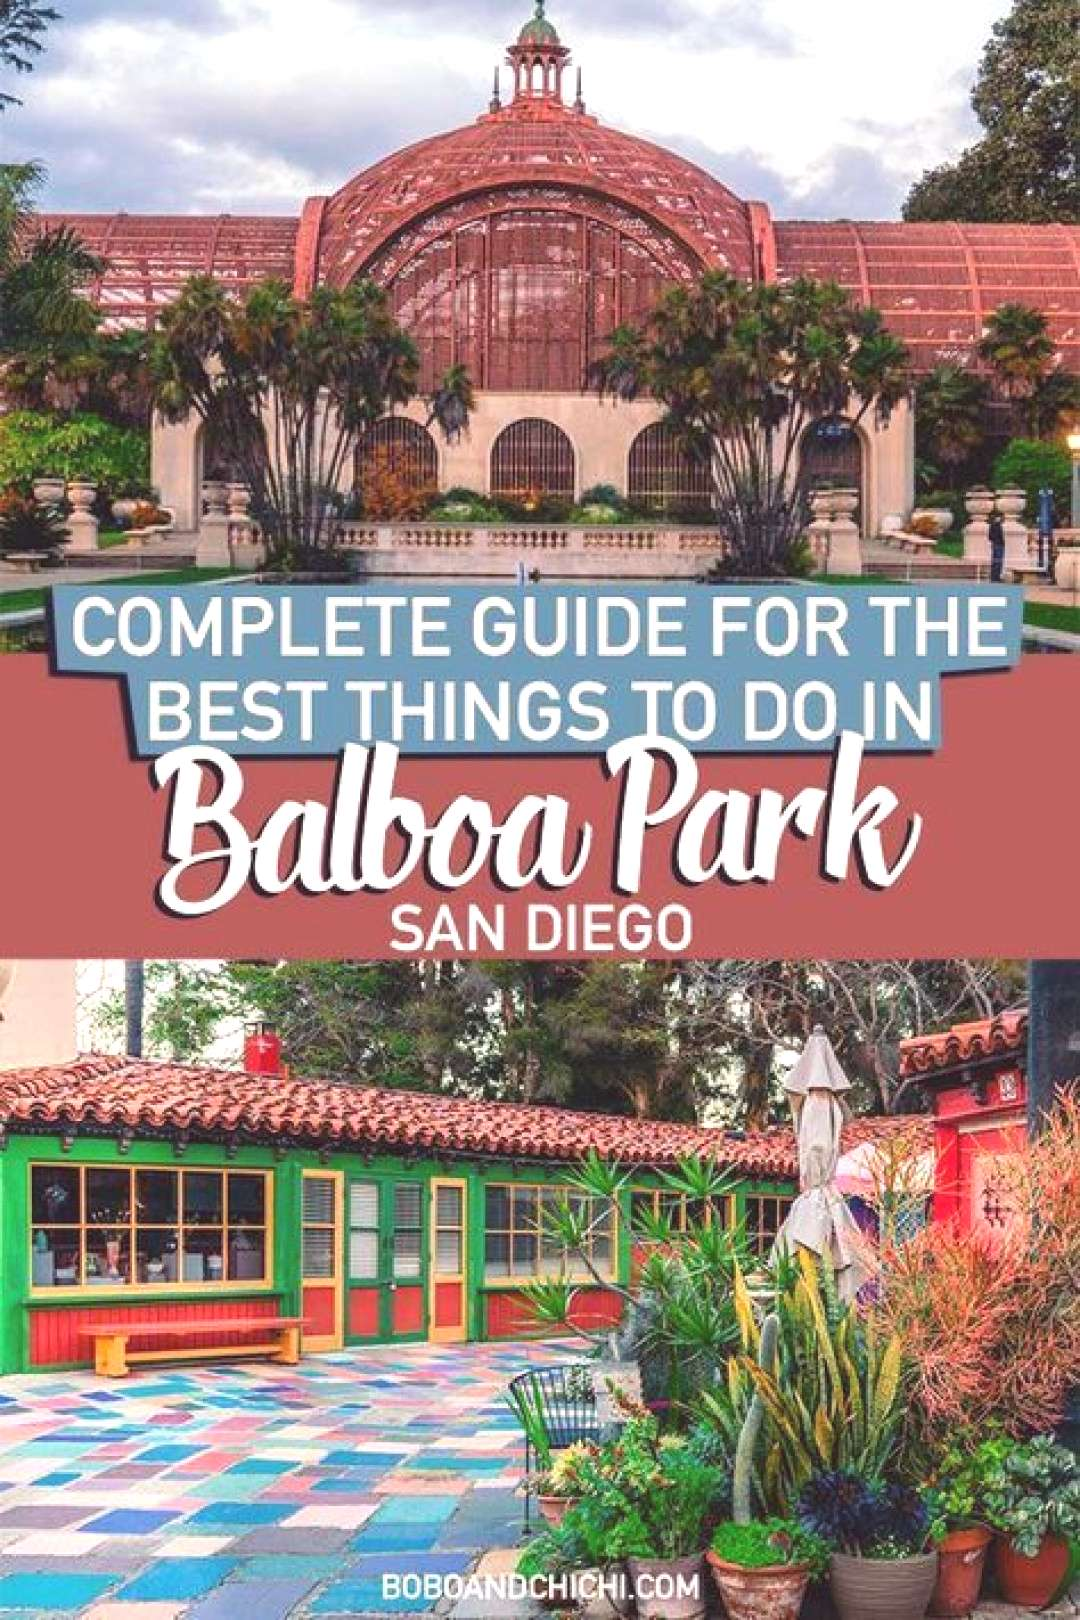 California Coast Travel Guide Carmel by the Sea - SVADORE A San Diego getaway or vacation isnt co